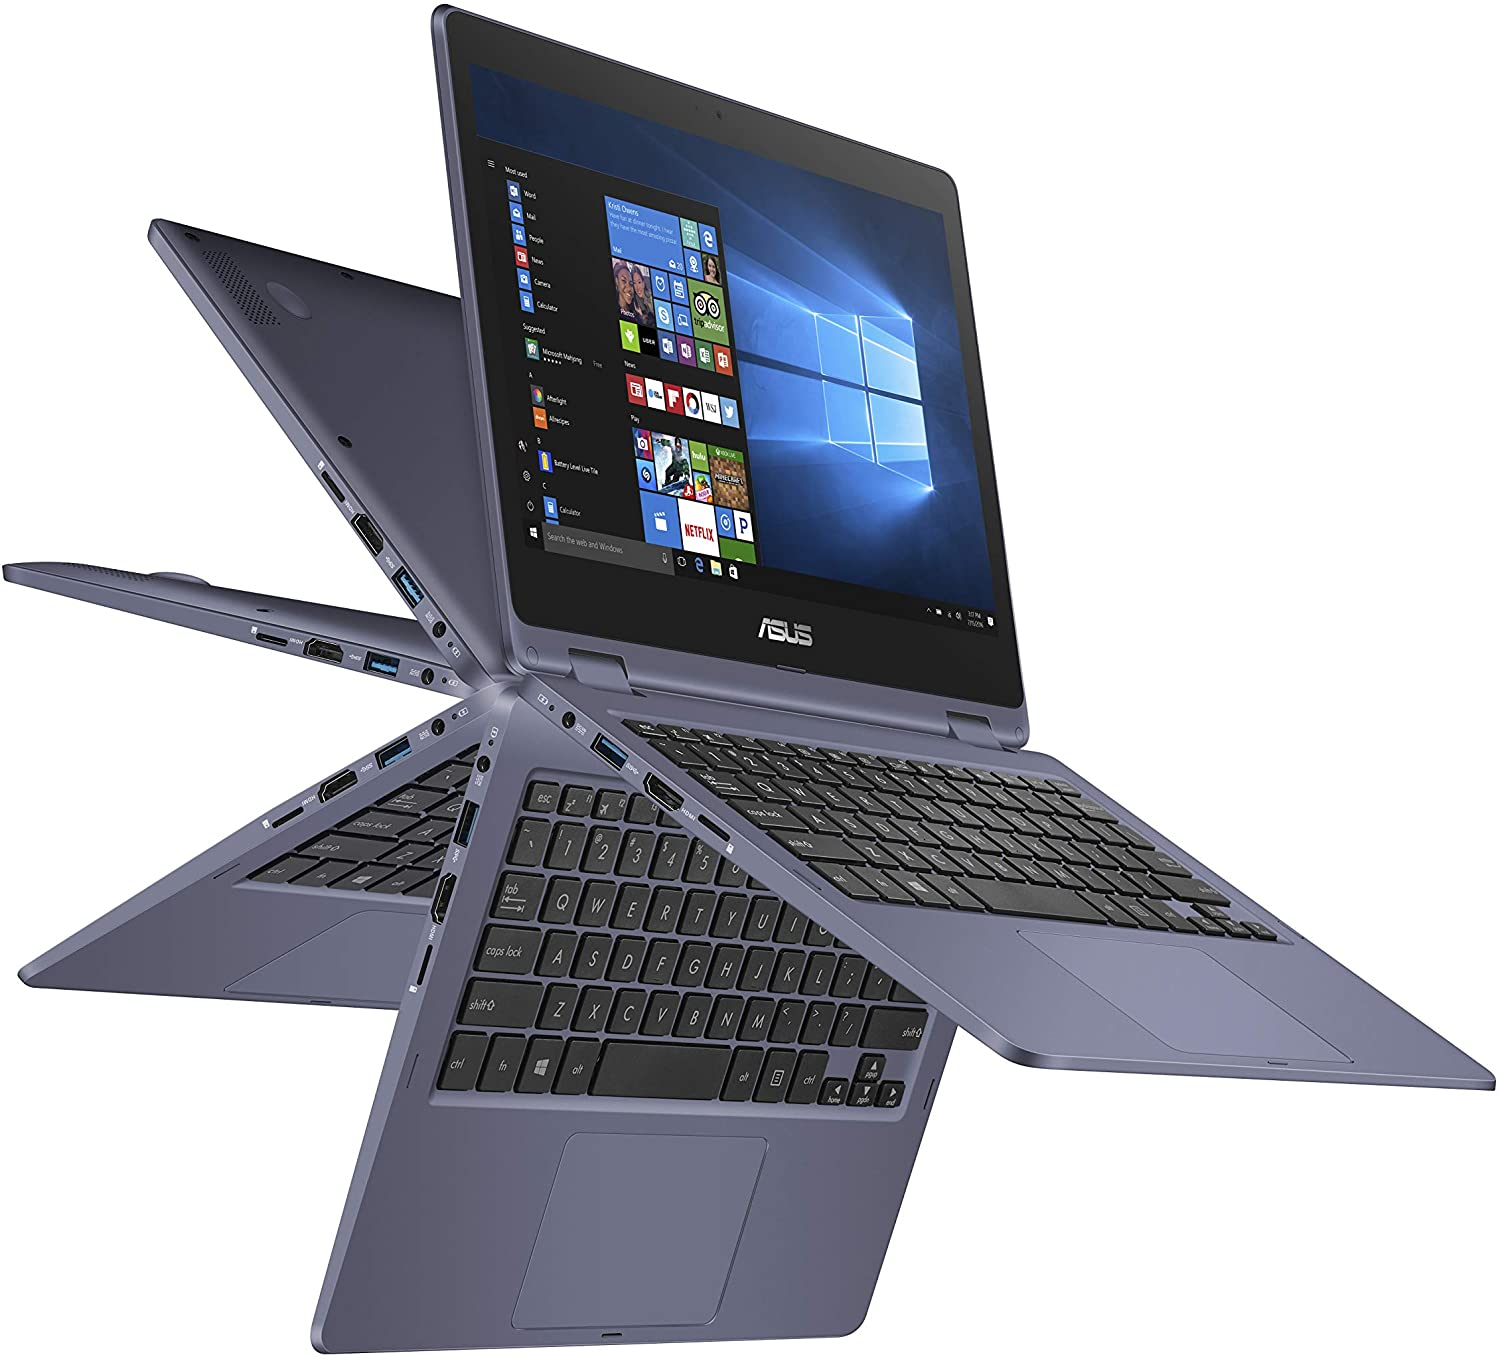 Asus Vivobook Flip 12 New life TP202NA-DH01T 2-in-1 shipfree Lightweight and Thin